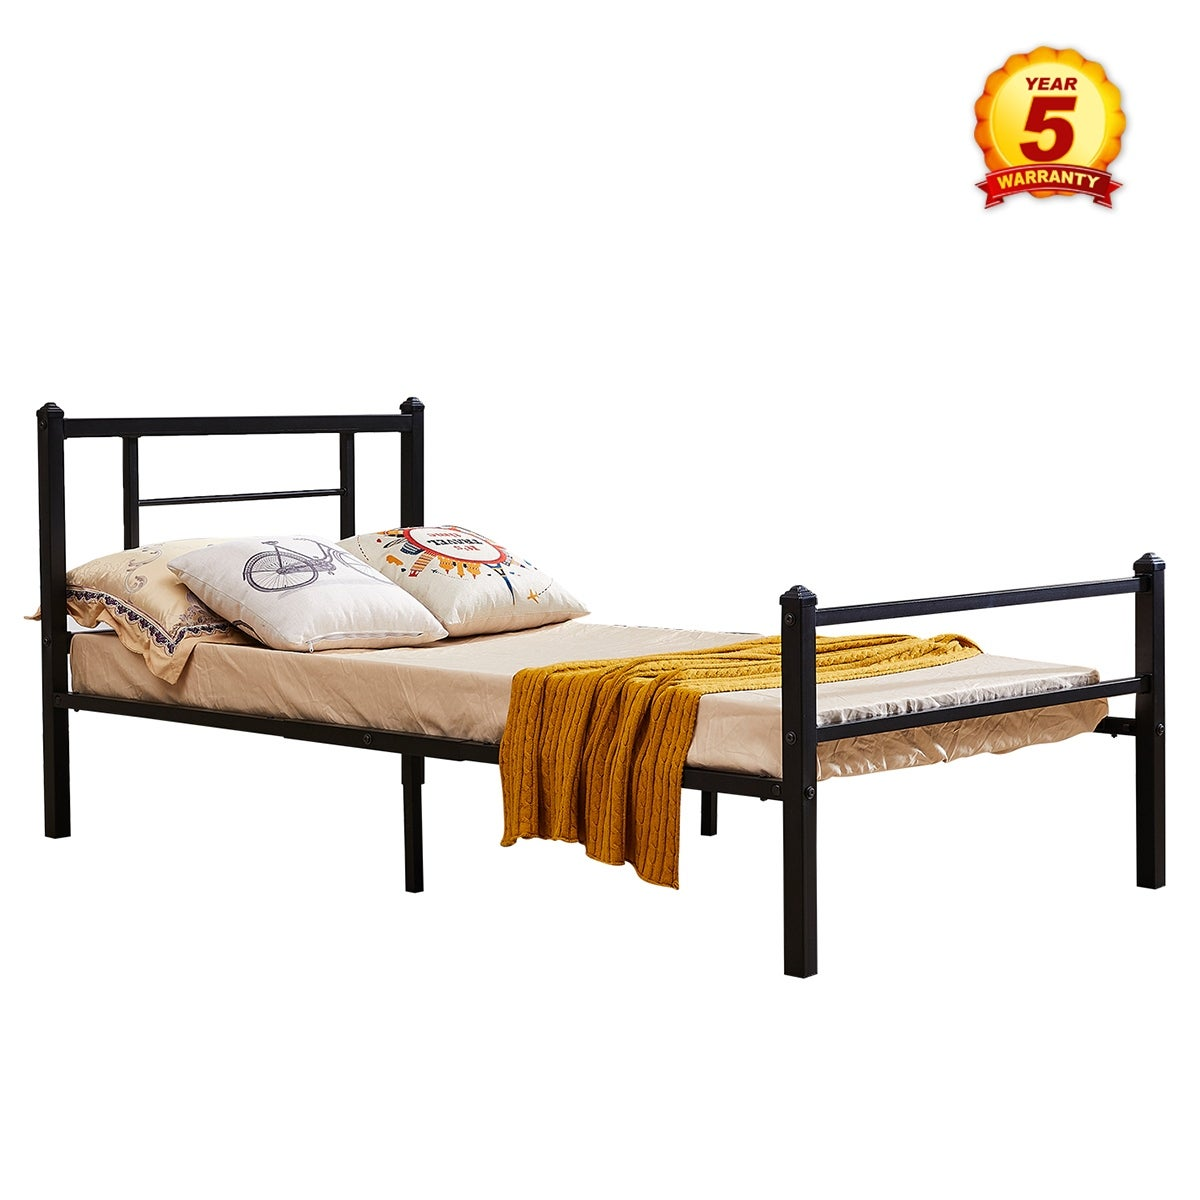 Shop mcombo black metal bed frame with headboard and footboardtwin full queen free shipping today overstock com 25586930